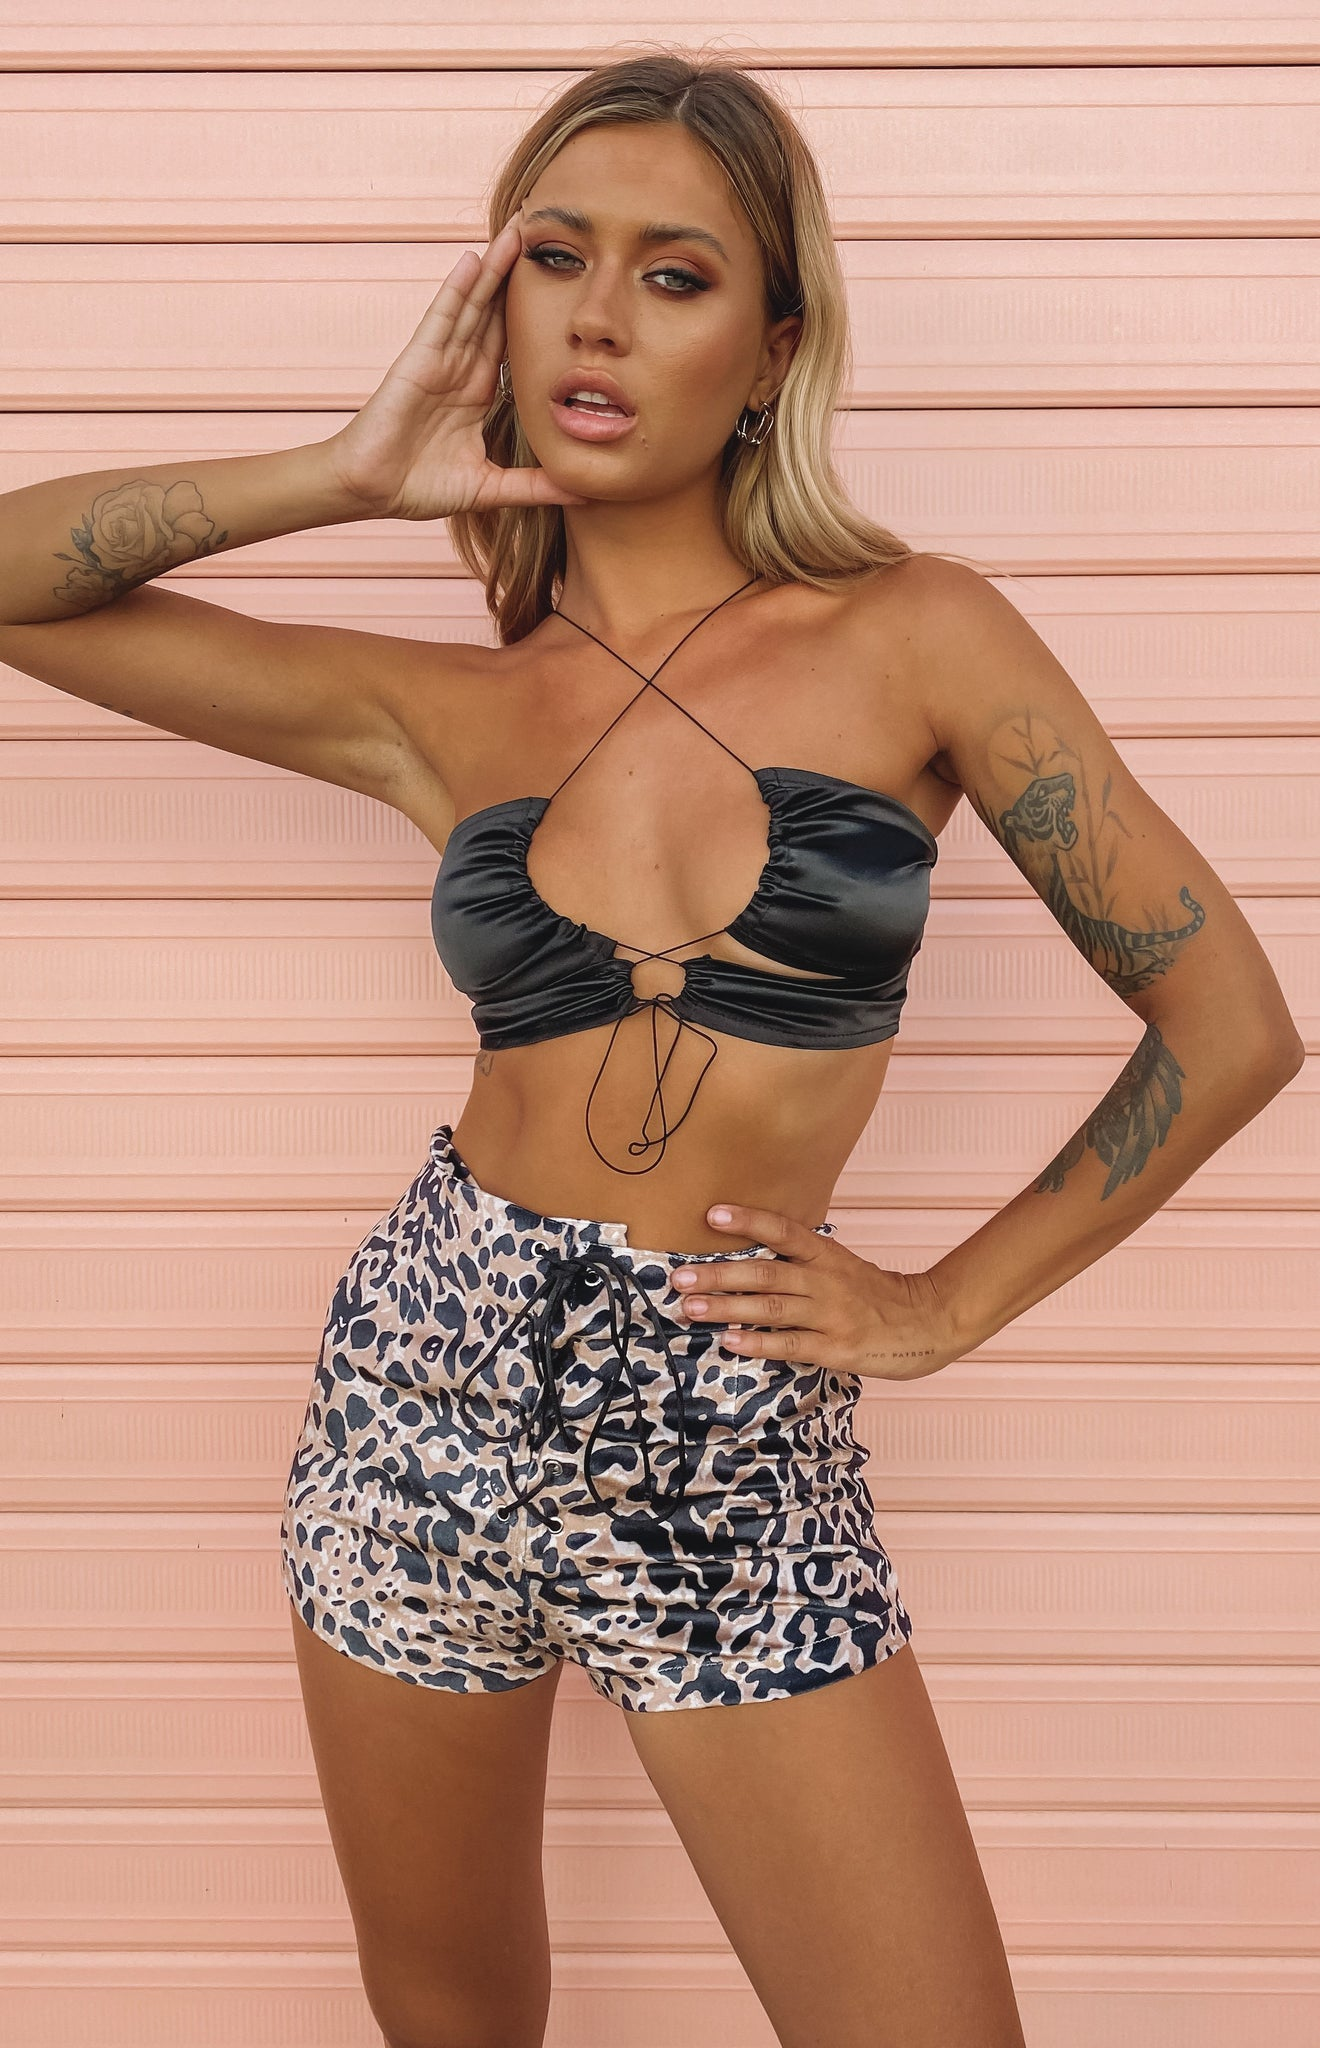 https://files.beginningboutique.com.au/GRAVITY+SHORTS+LEOPARD.mp4